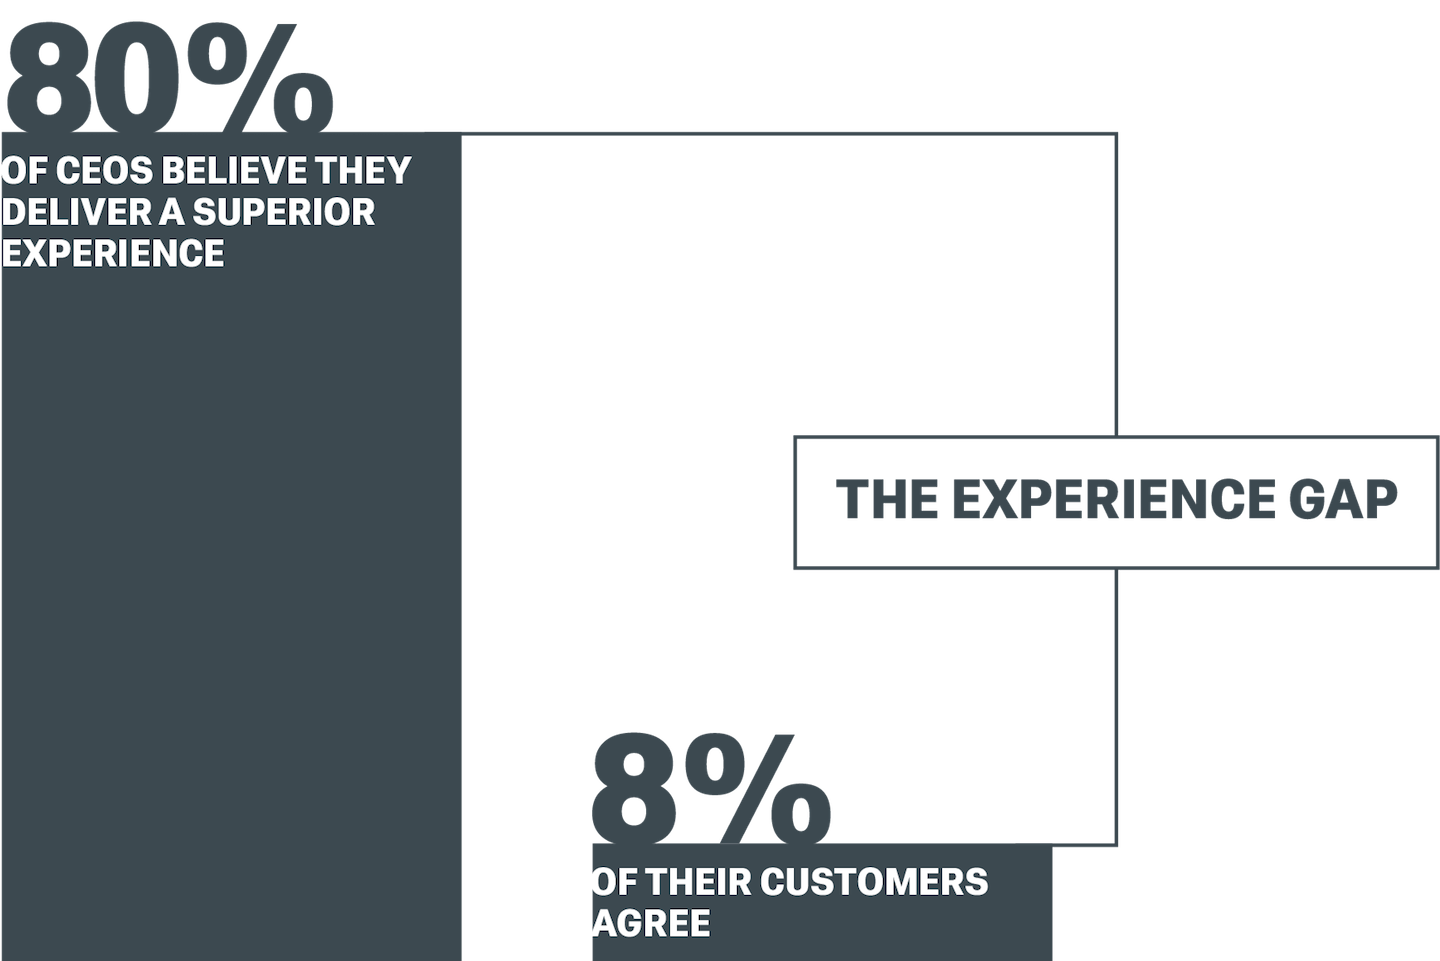 80% of CEOs believe they deliver a superior experience; 8% of their cusotmers agree